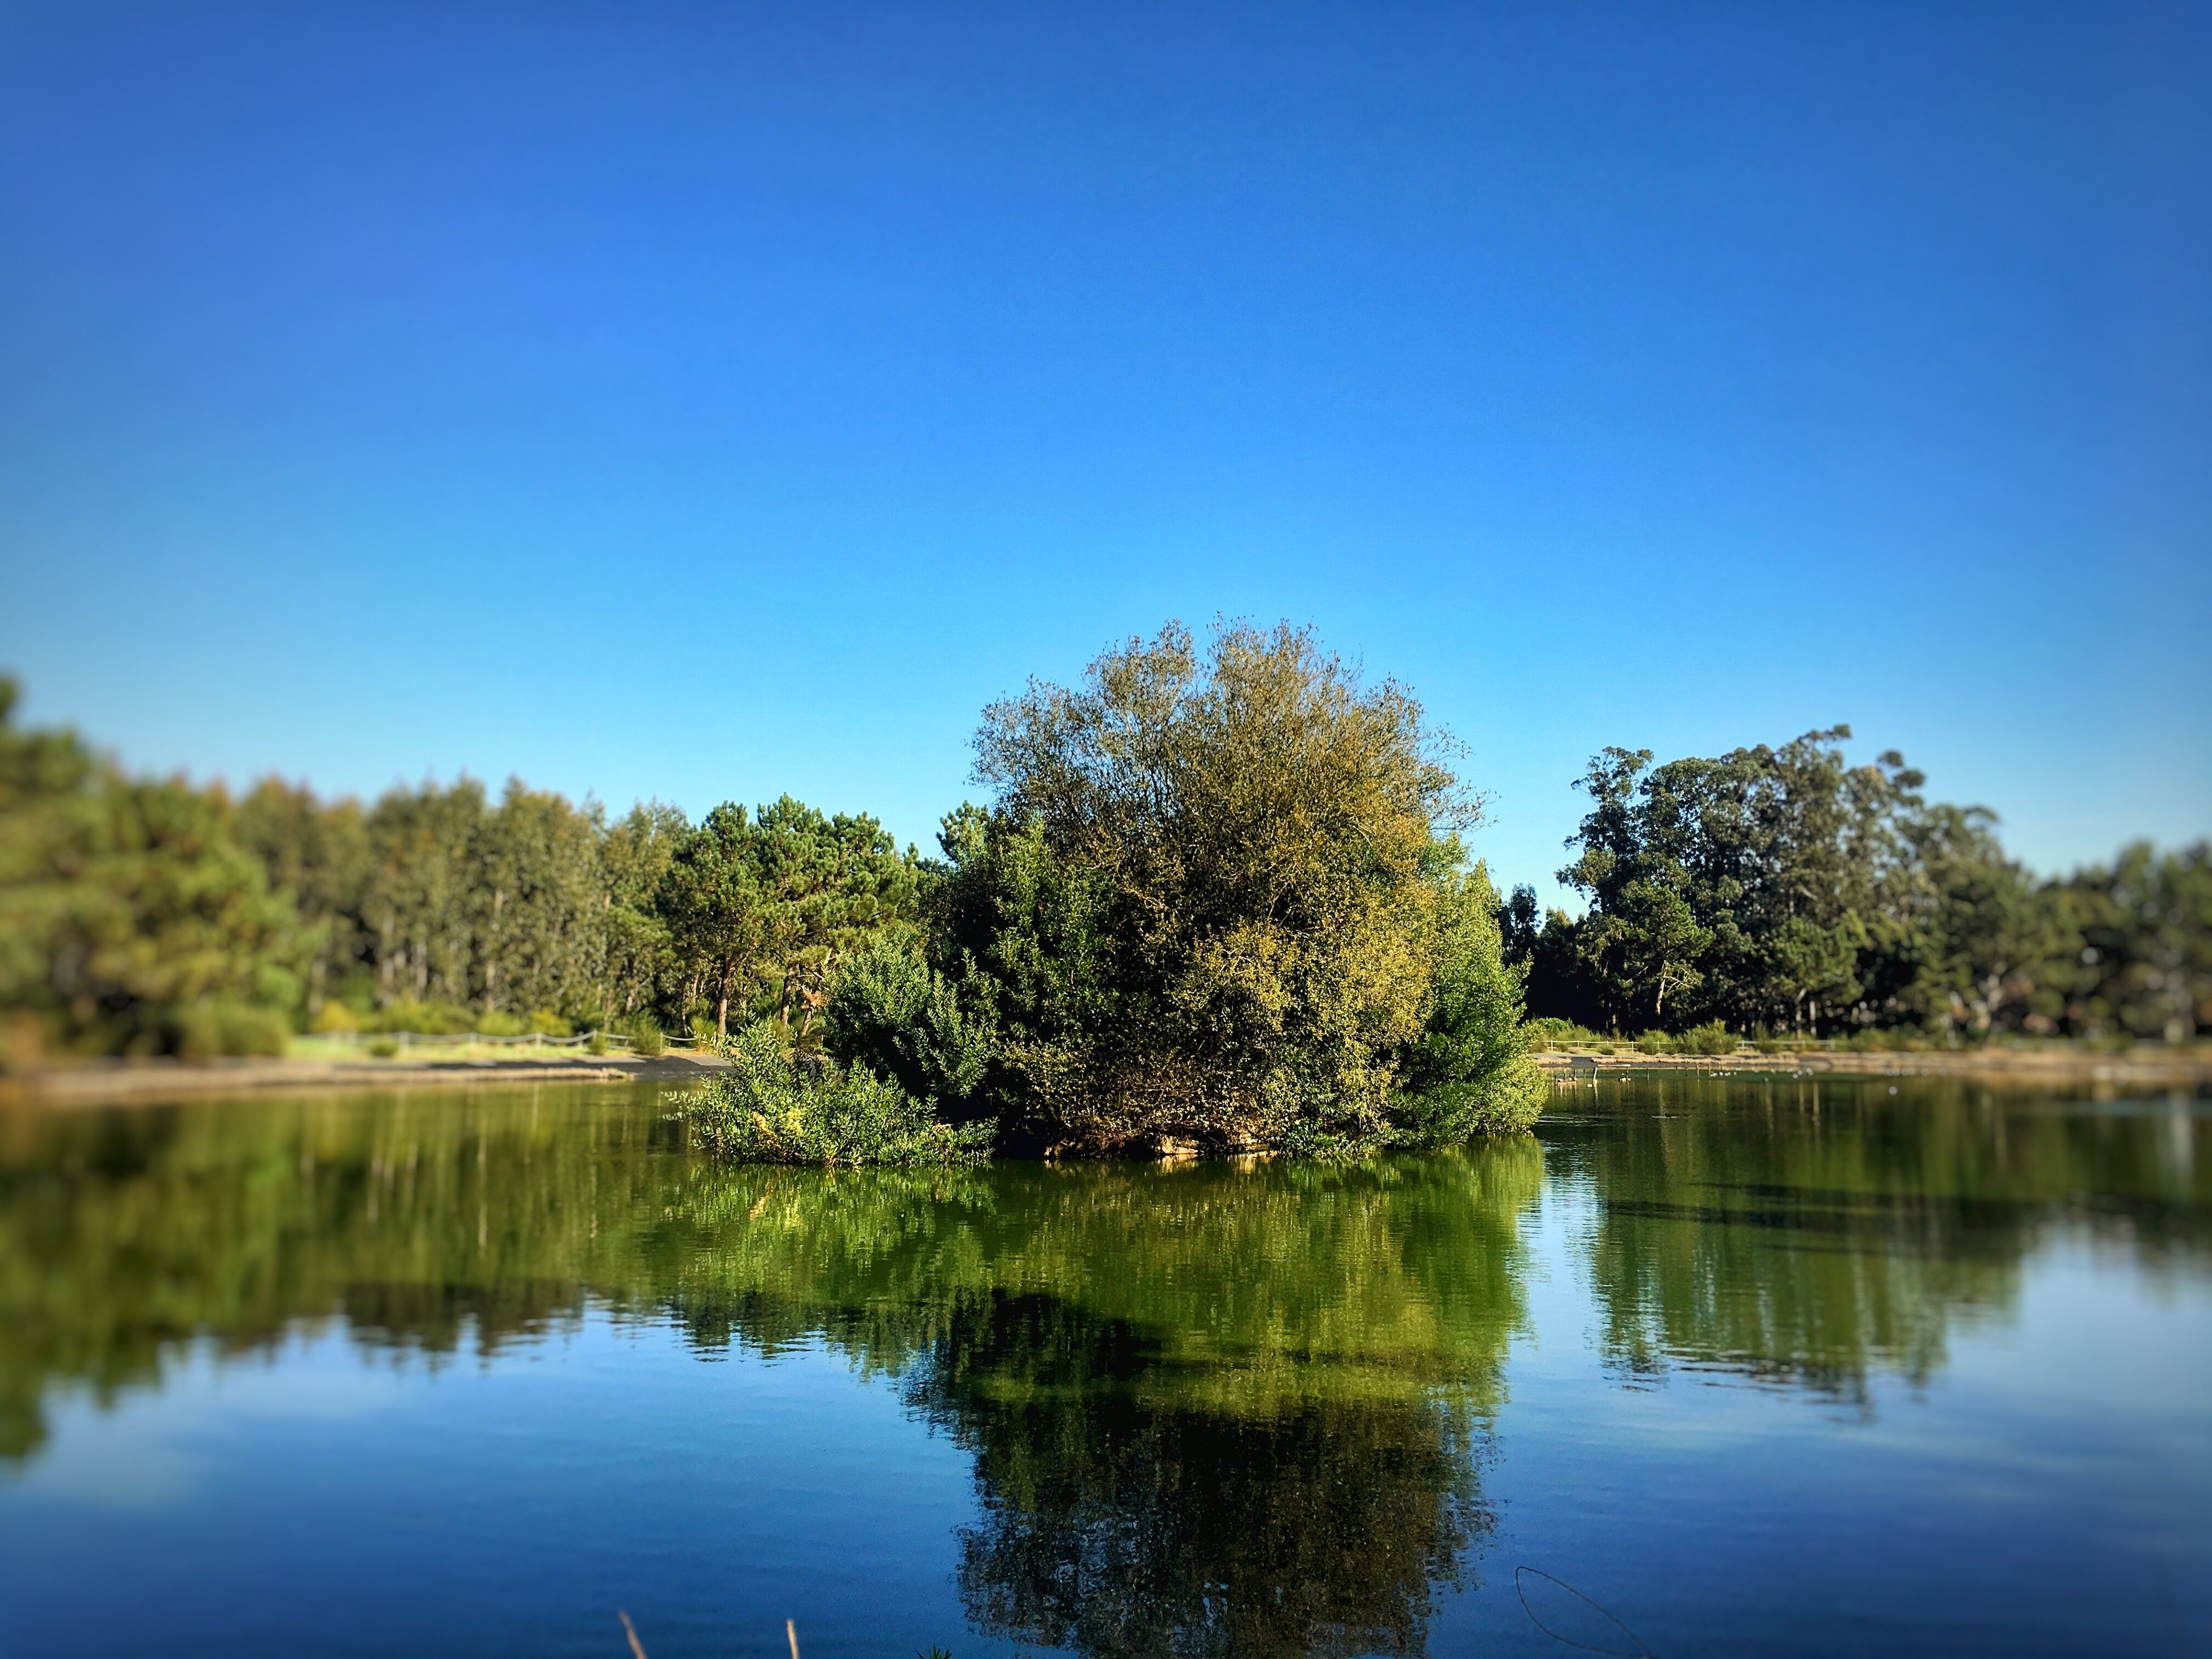 reflection, water, tree, nature, clear sky, blue, waterfront, no people, growth, beauty in nature, outdoors, scenics, lake, day, sky